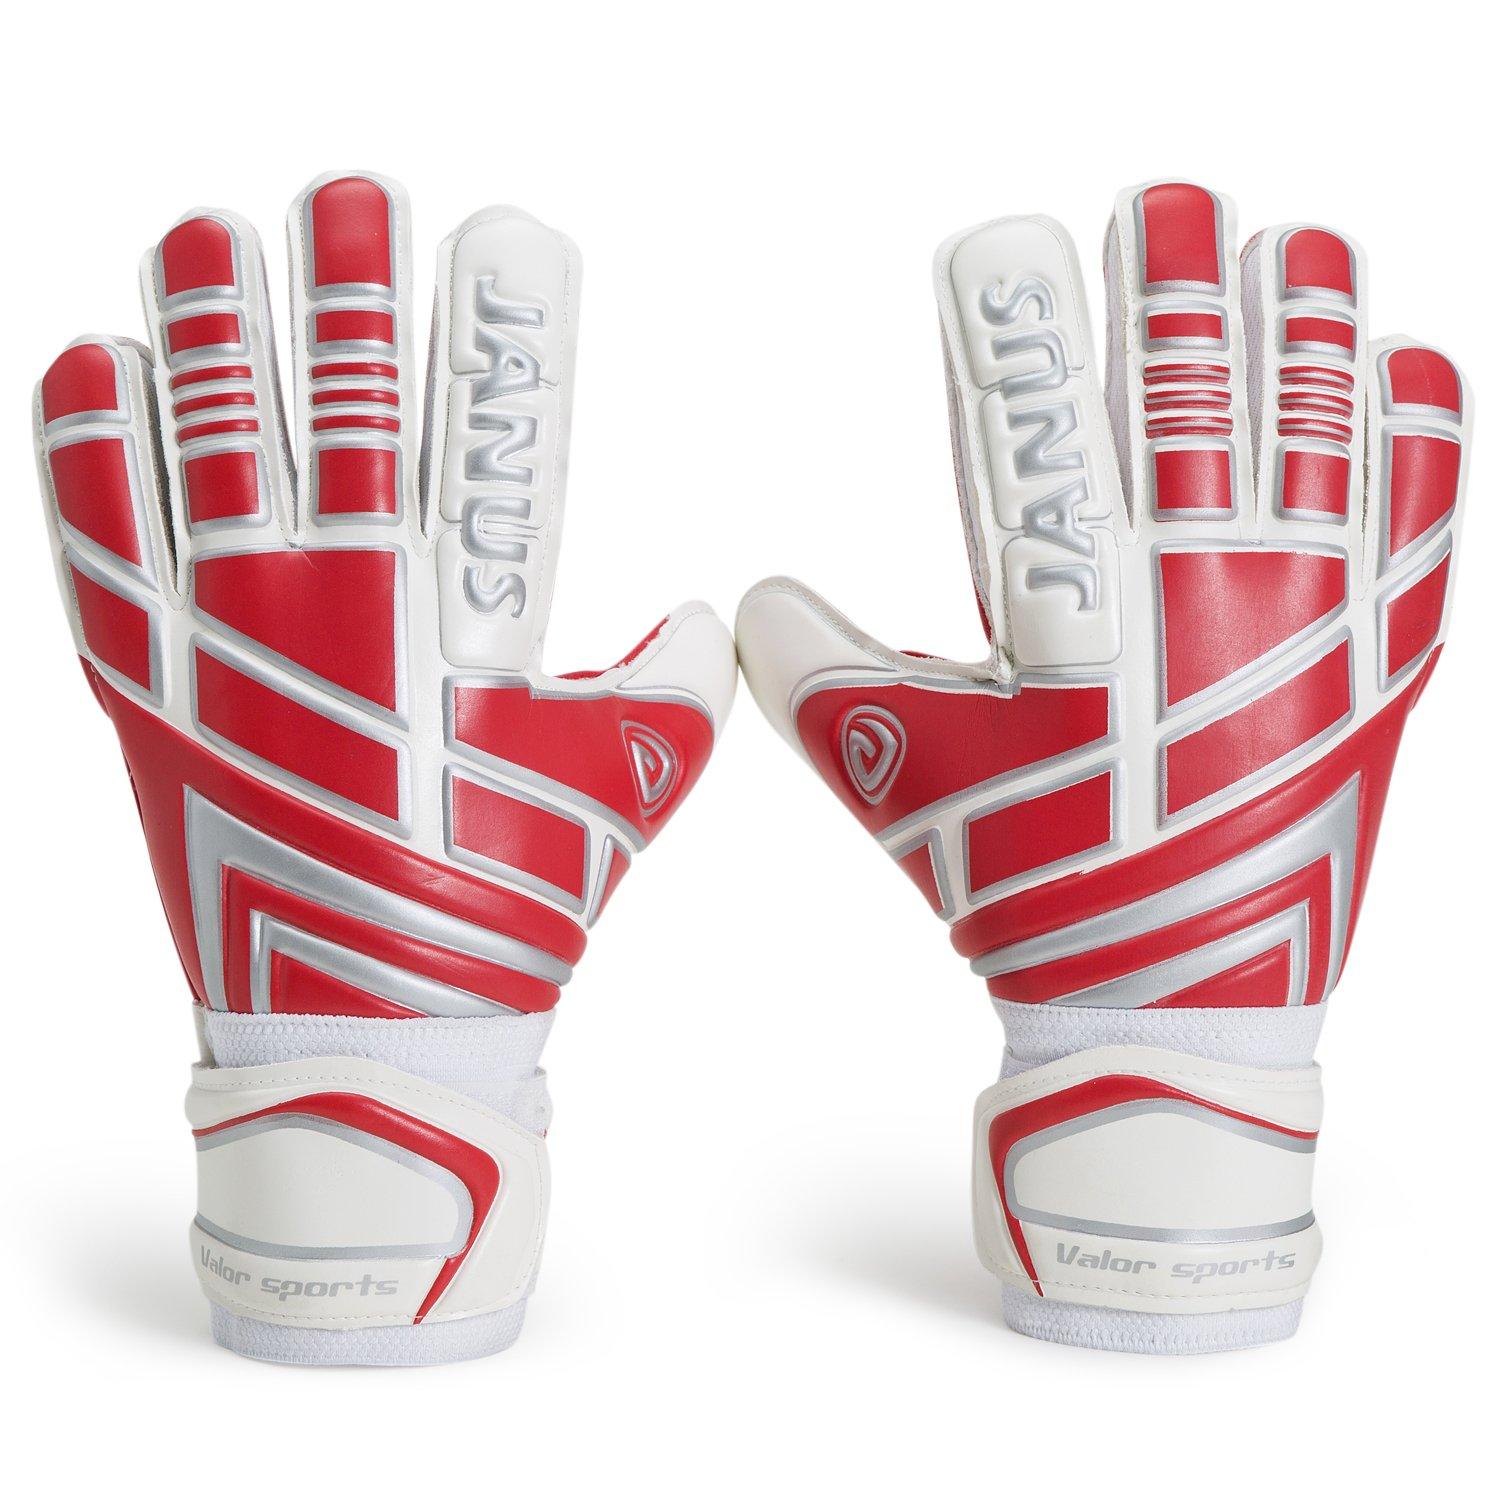 valorsports Youth &大人用Goalieゴールキーパーグローブ、強力なグリップfor the Toughest Saves、with Finger Spines to give Splendid保護ケガを防ぐて B073JQL4X2 10|レッド レッド 10